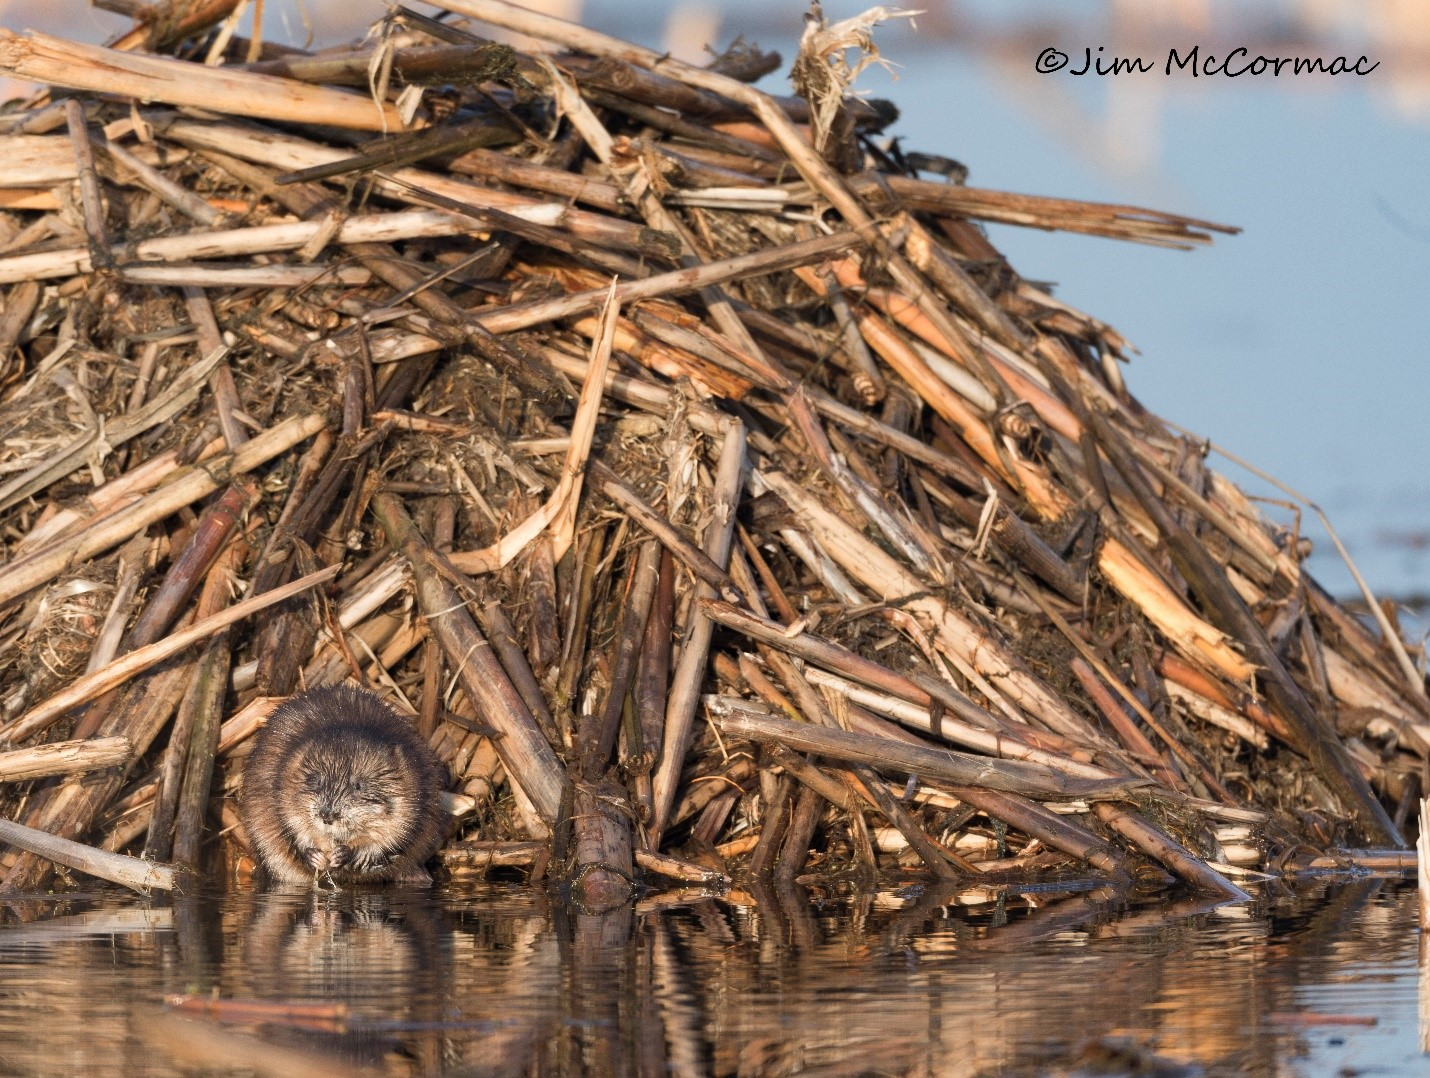 A muskrat takes a well-earned break, chewing on a cattail tuber at the base of his gargantuan lodge.